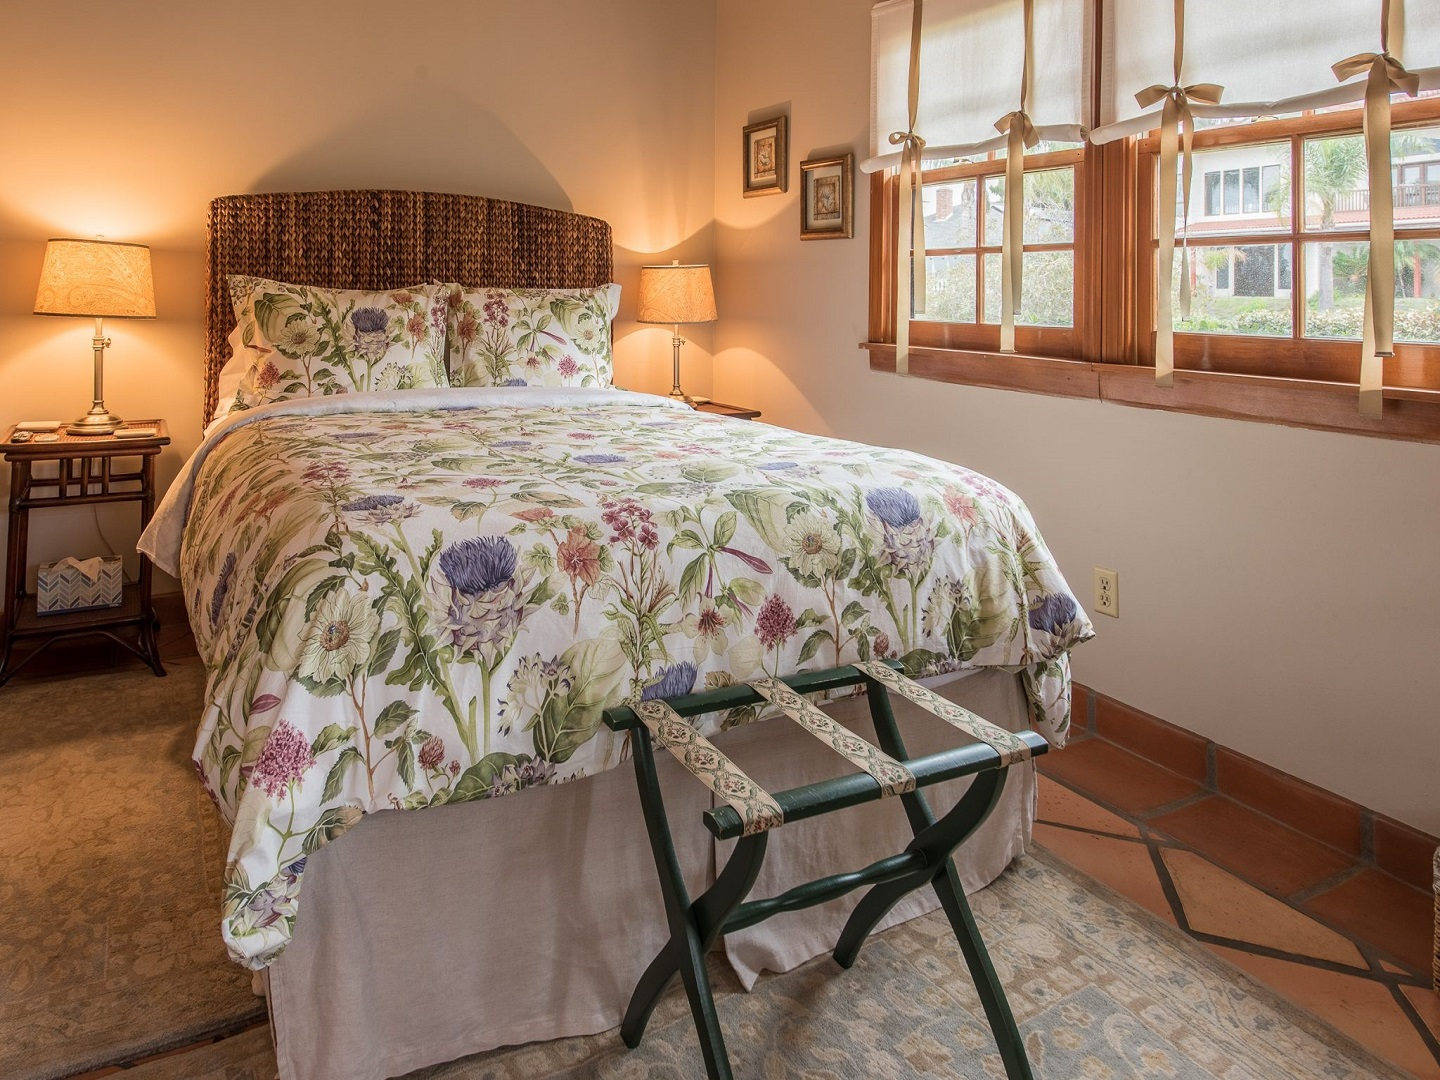 A double bed in a room at Kate Stanton Inn Encinitas.